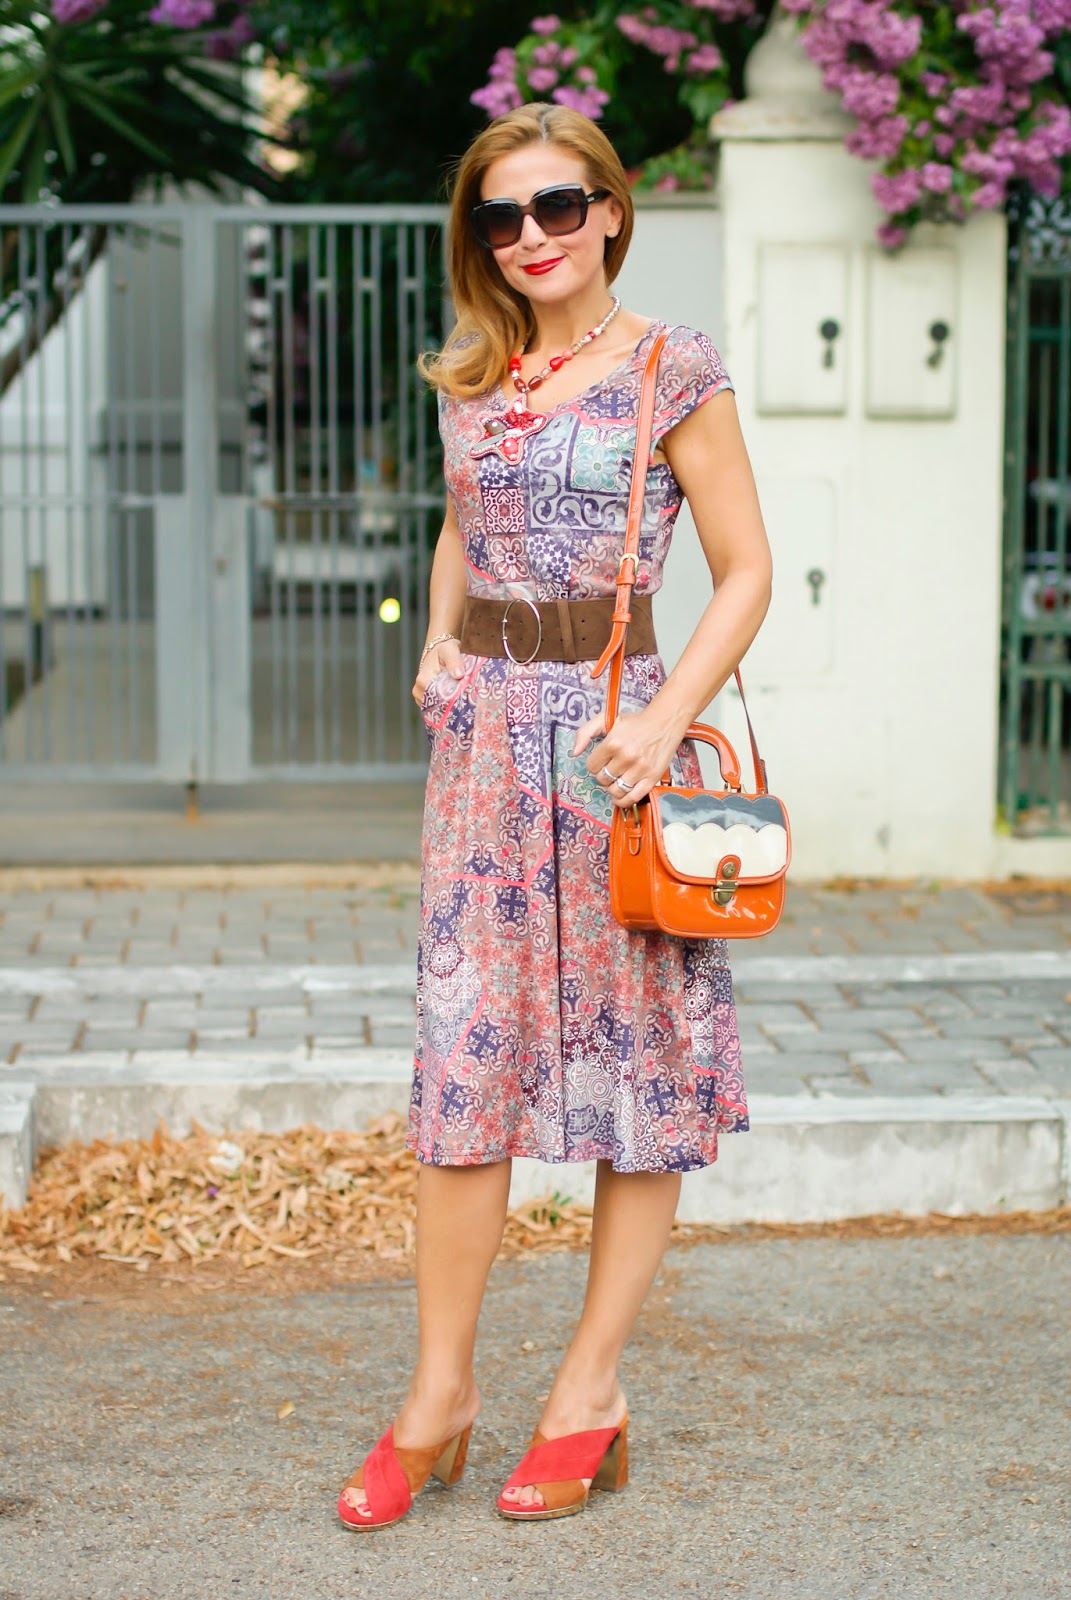 Hippie chic style on Fashion and Cookies fashion blog, fashion blogger style